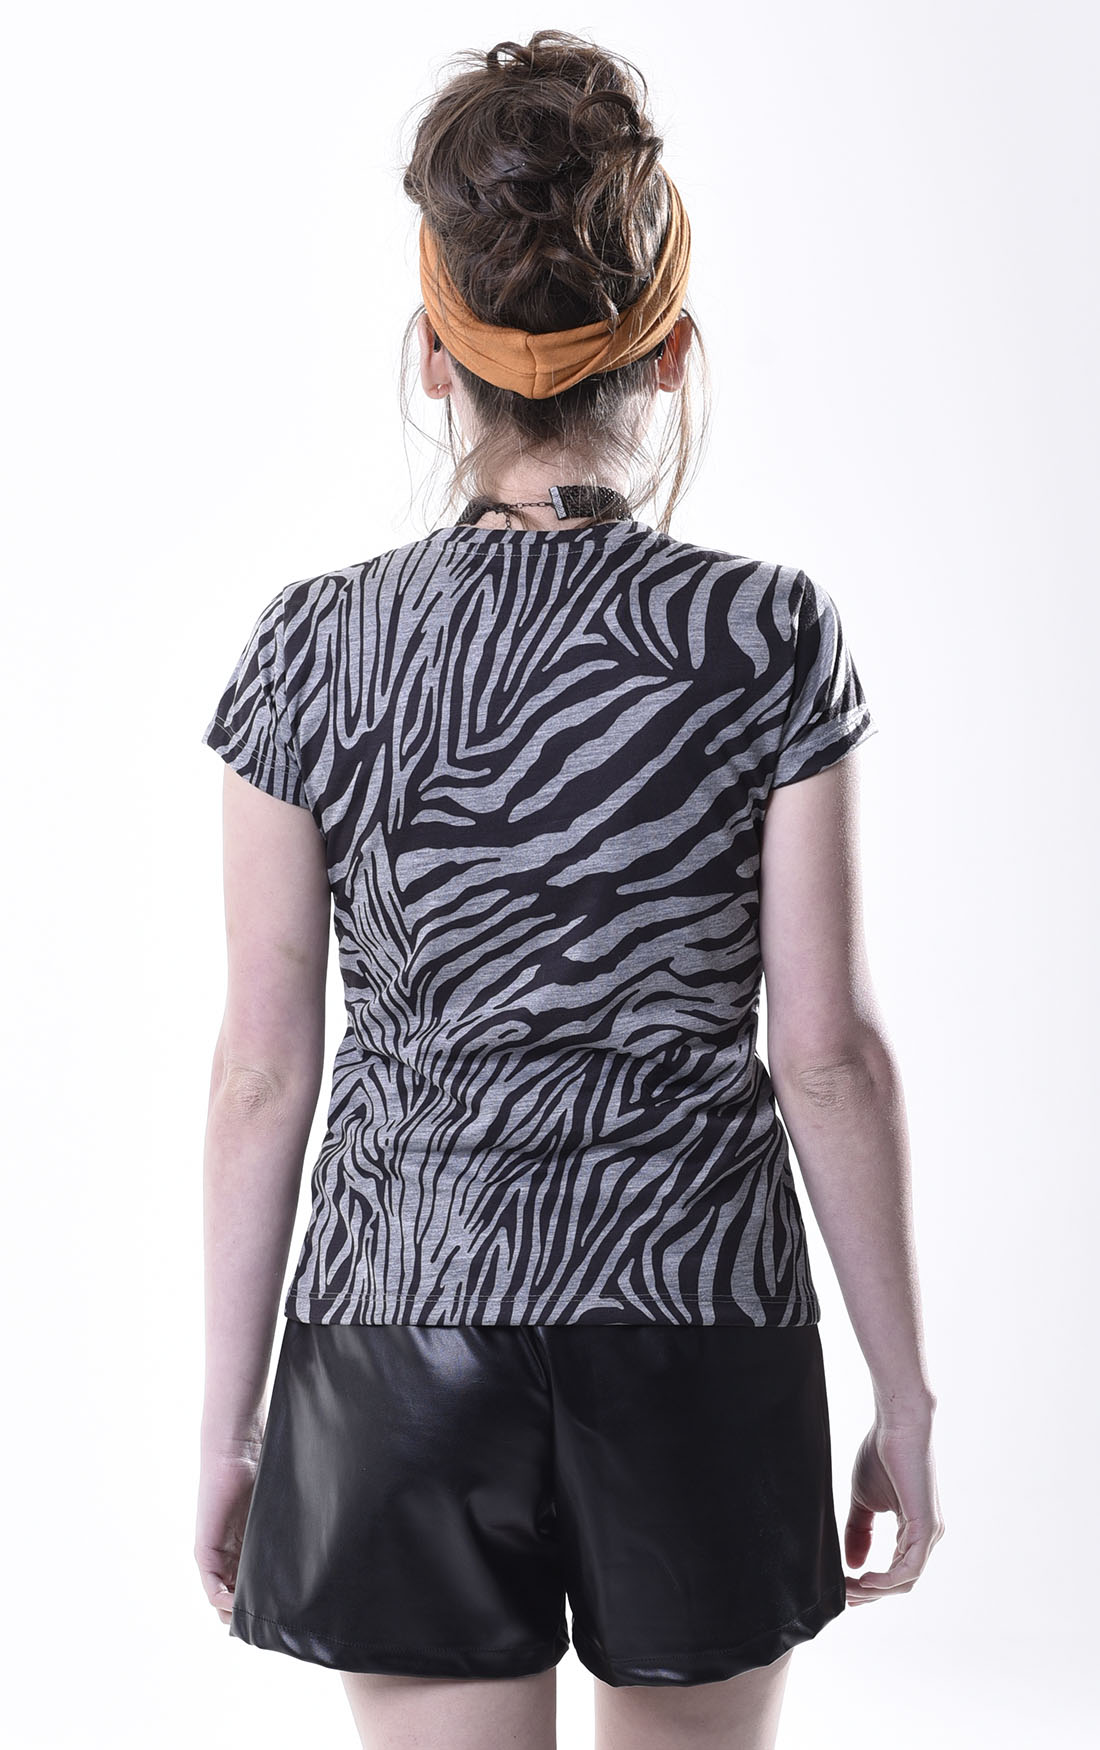 T-Shirt Malha Animal Print Codigo Girls